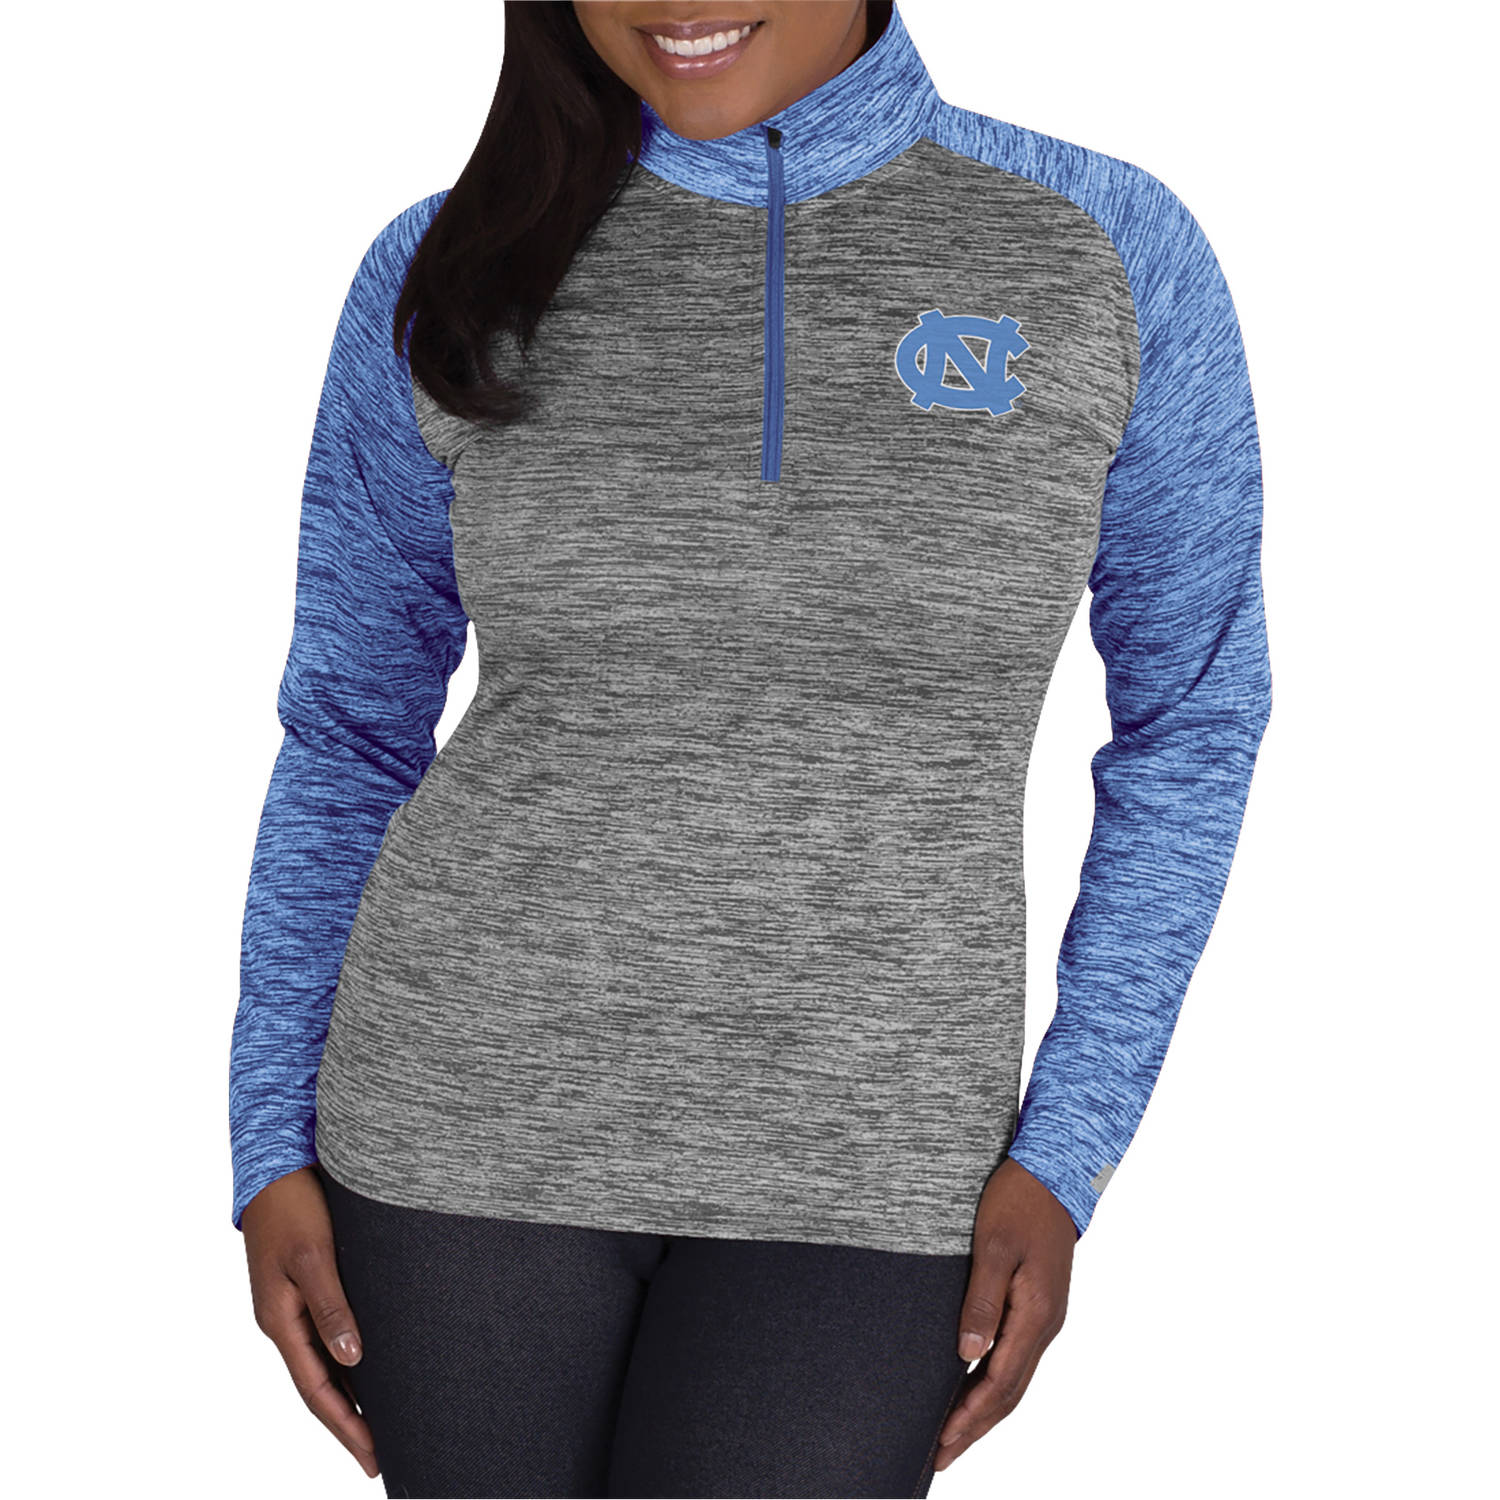 NCAA UNC Tar Heels Ladies 1/4 Zip Athletic-Fitness Pullover